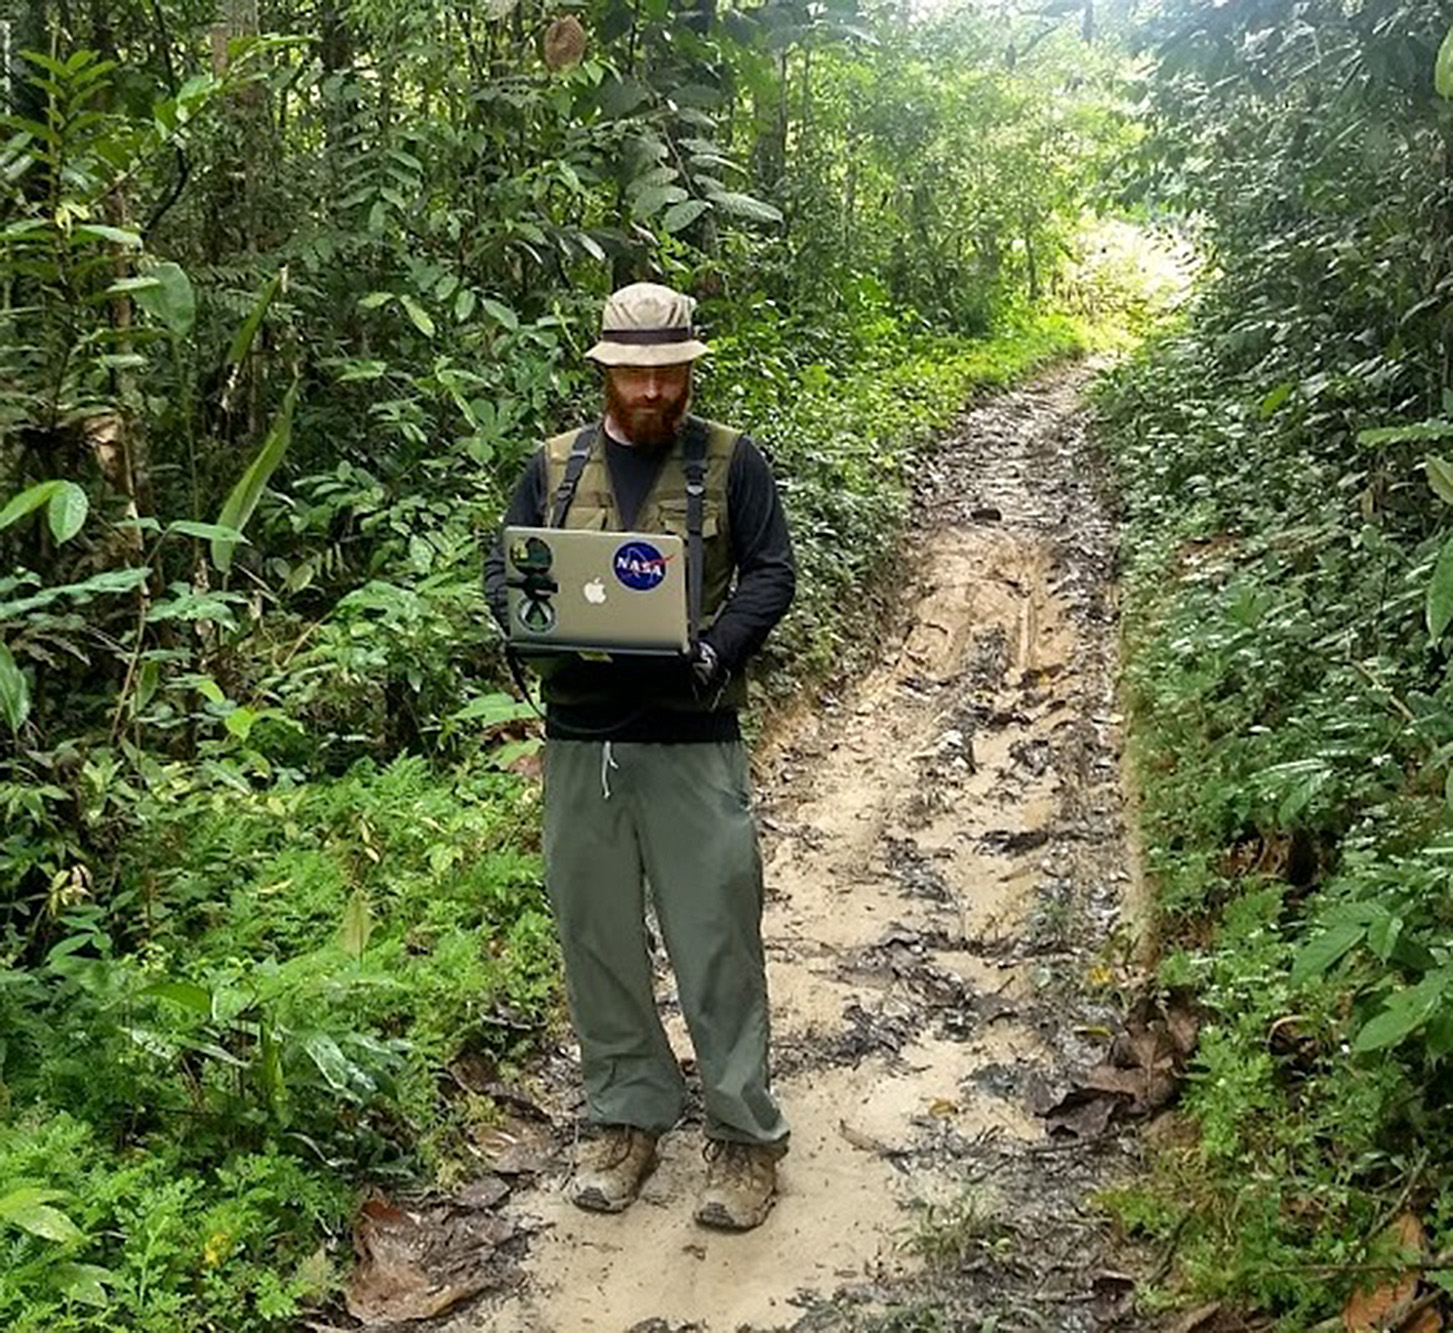 Dr. Bullock standing on a muddy road surrounded by dark green vegetation. He wears a rainhat and a rain jacket, and is holding a laptop computer.